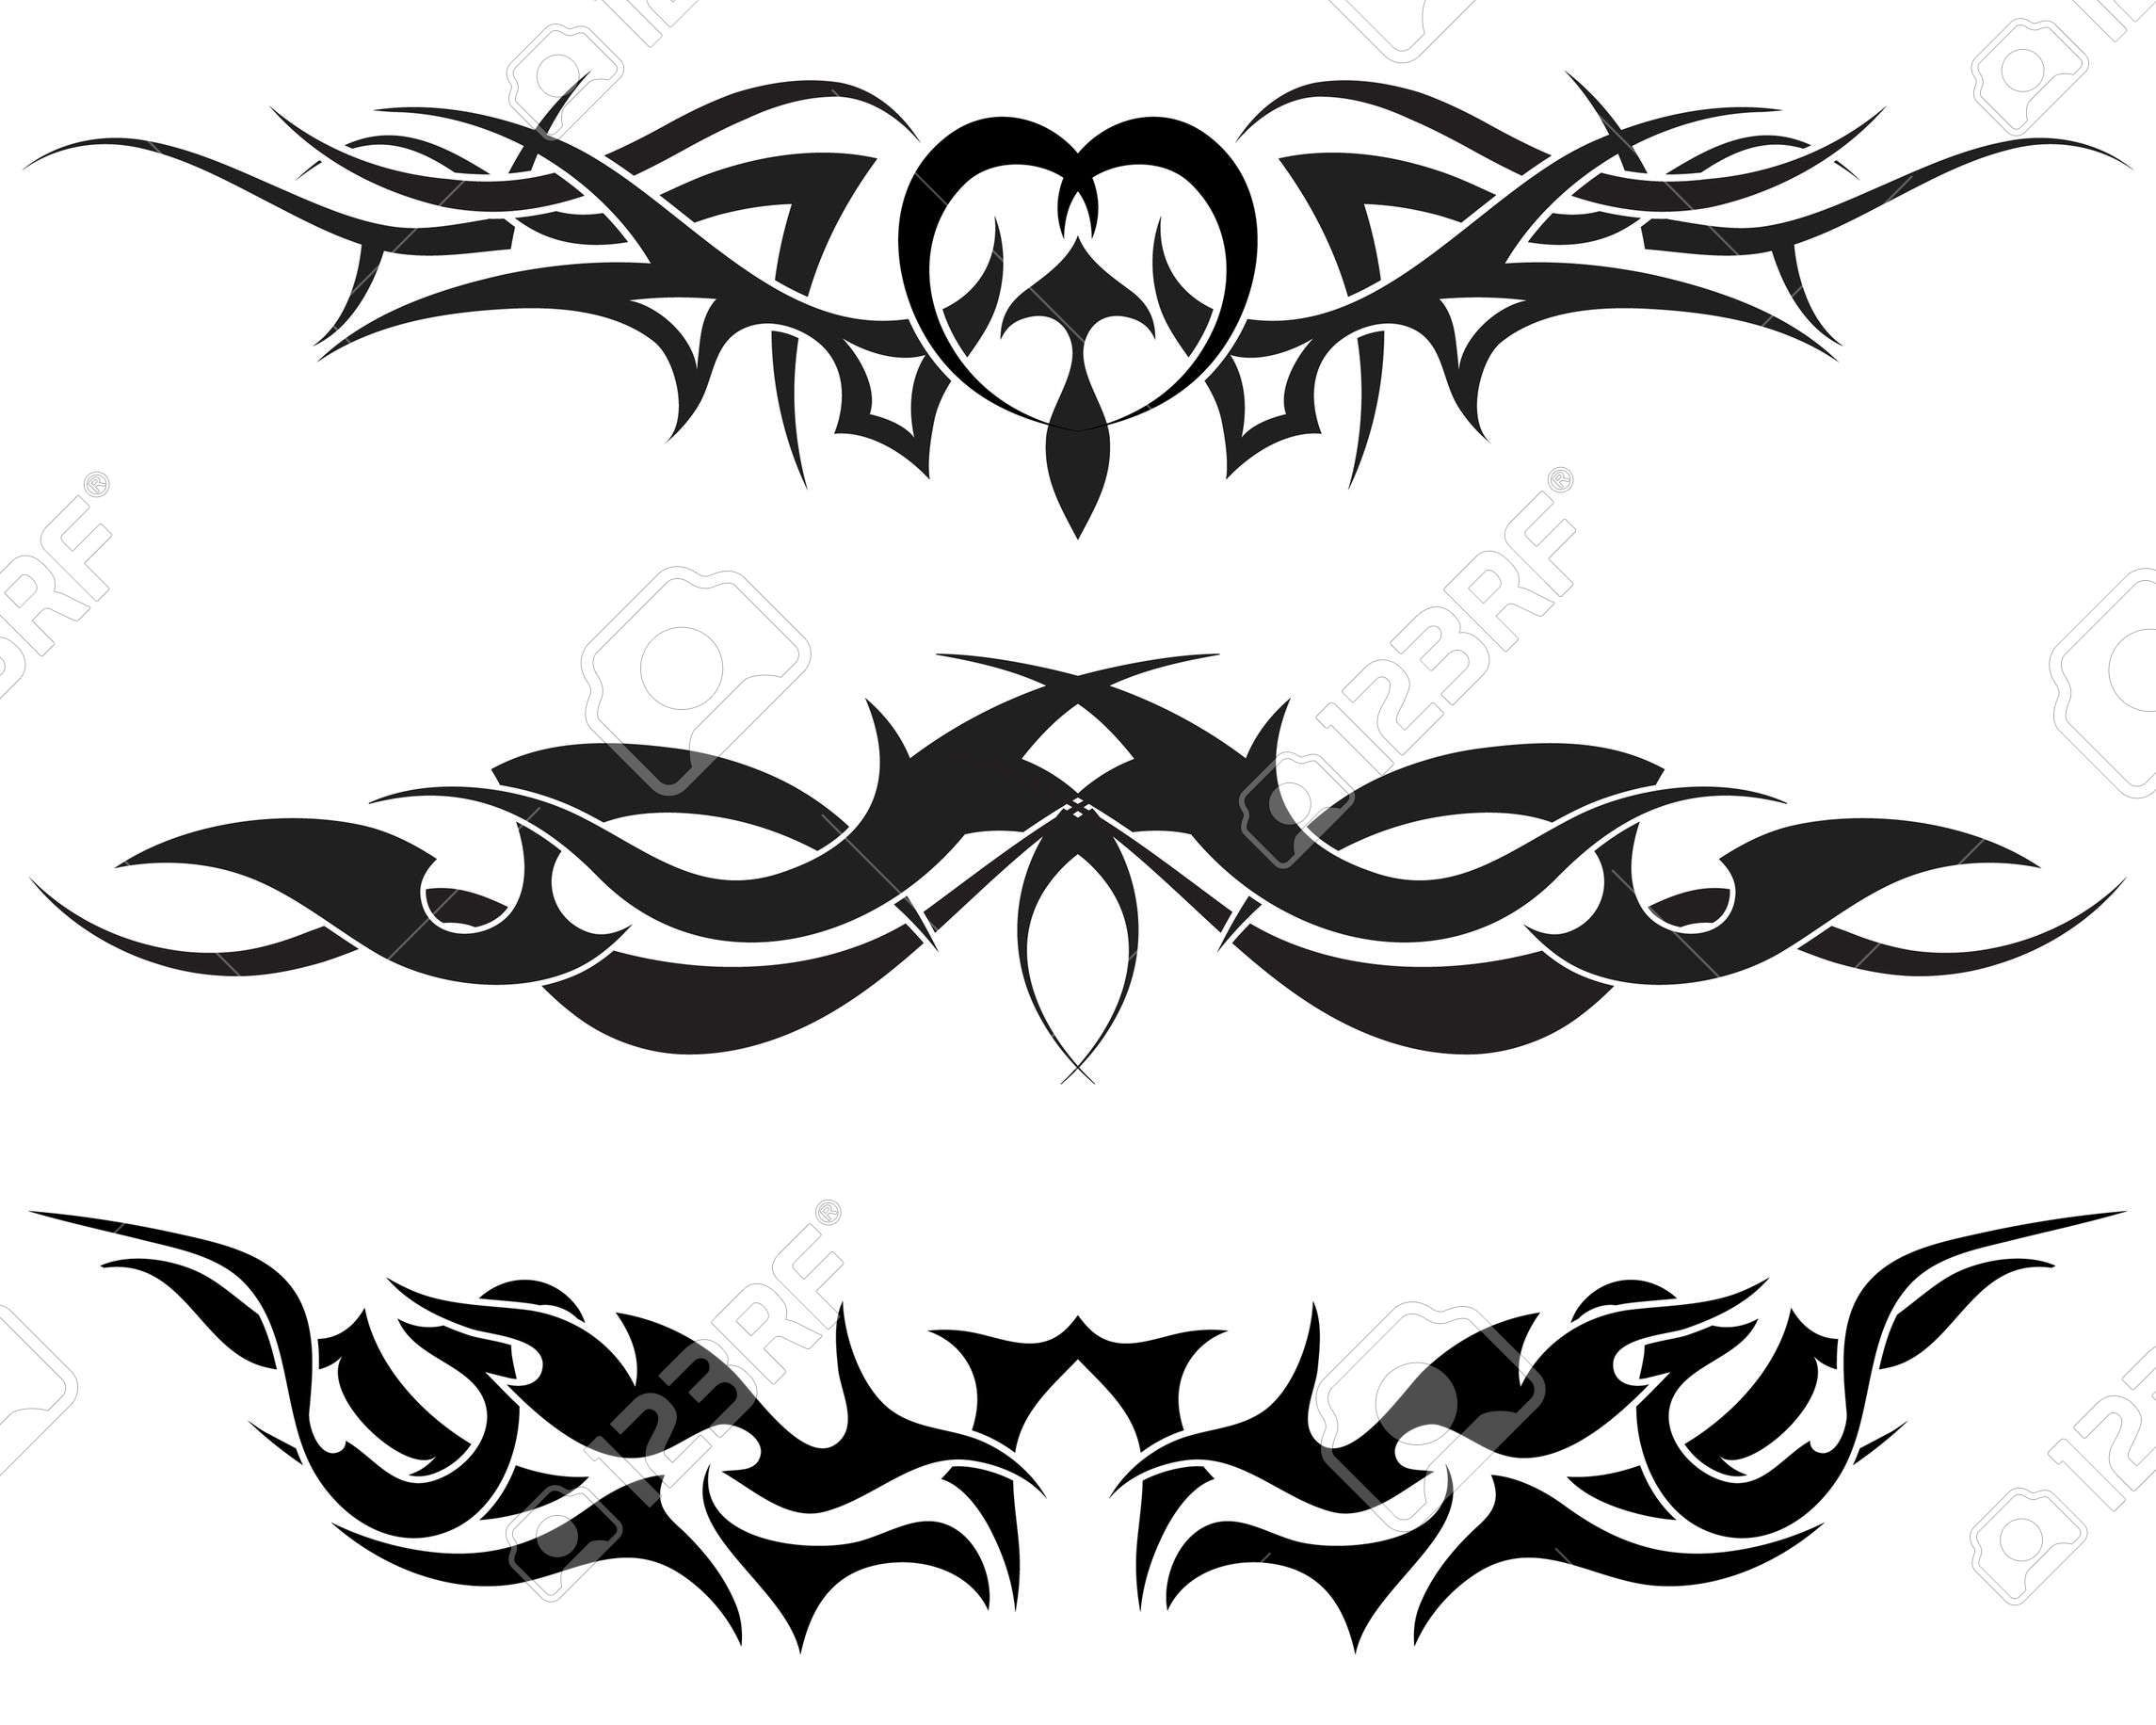 Patterns Of Tribal Tattoo For Design Use Lower Back Tattoo Designs Tribal Tattoo Designs Tribal Tattoos